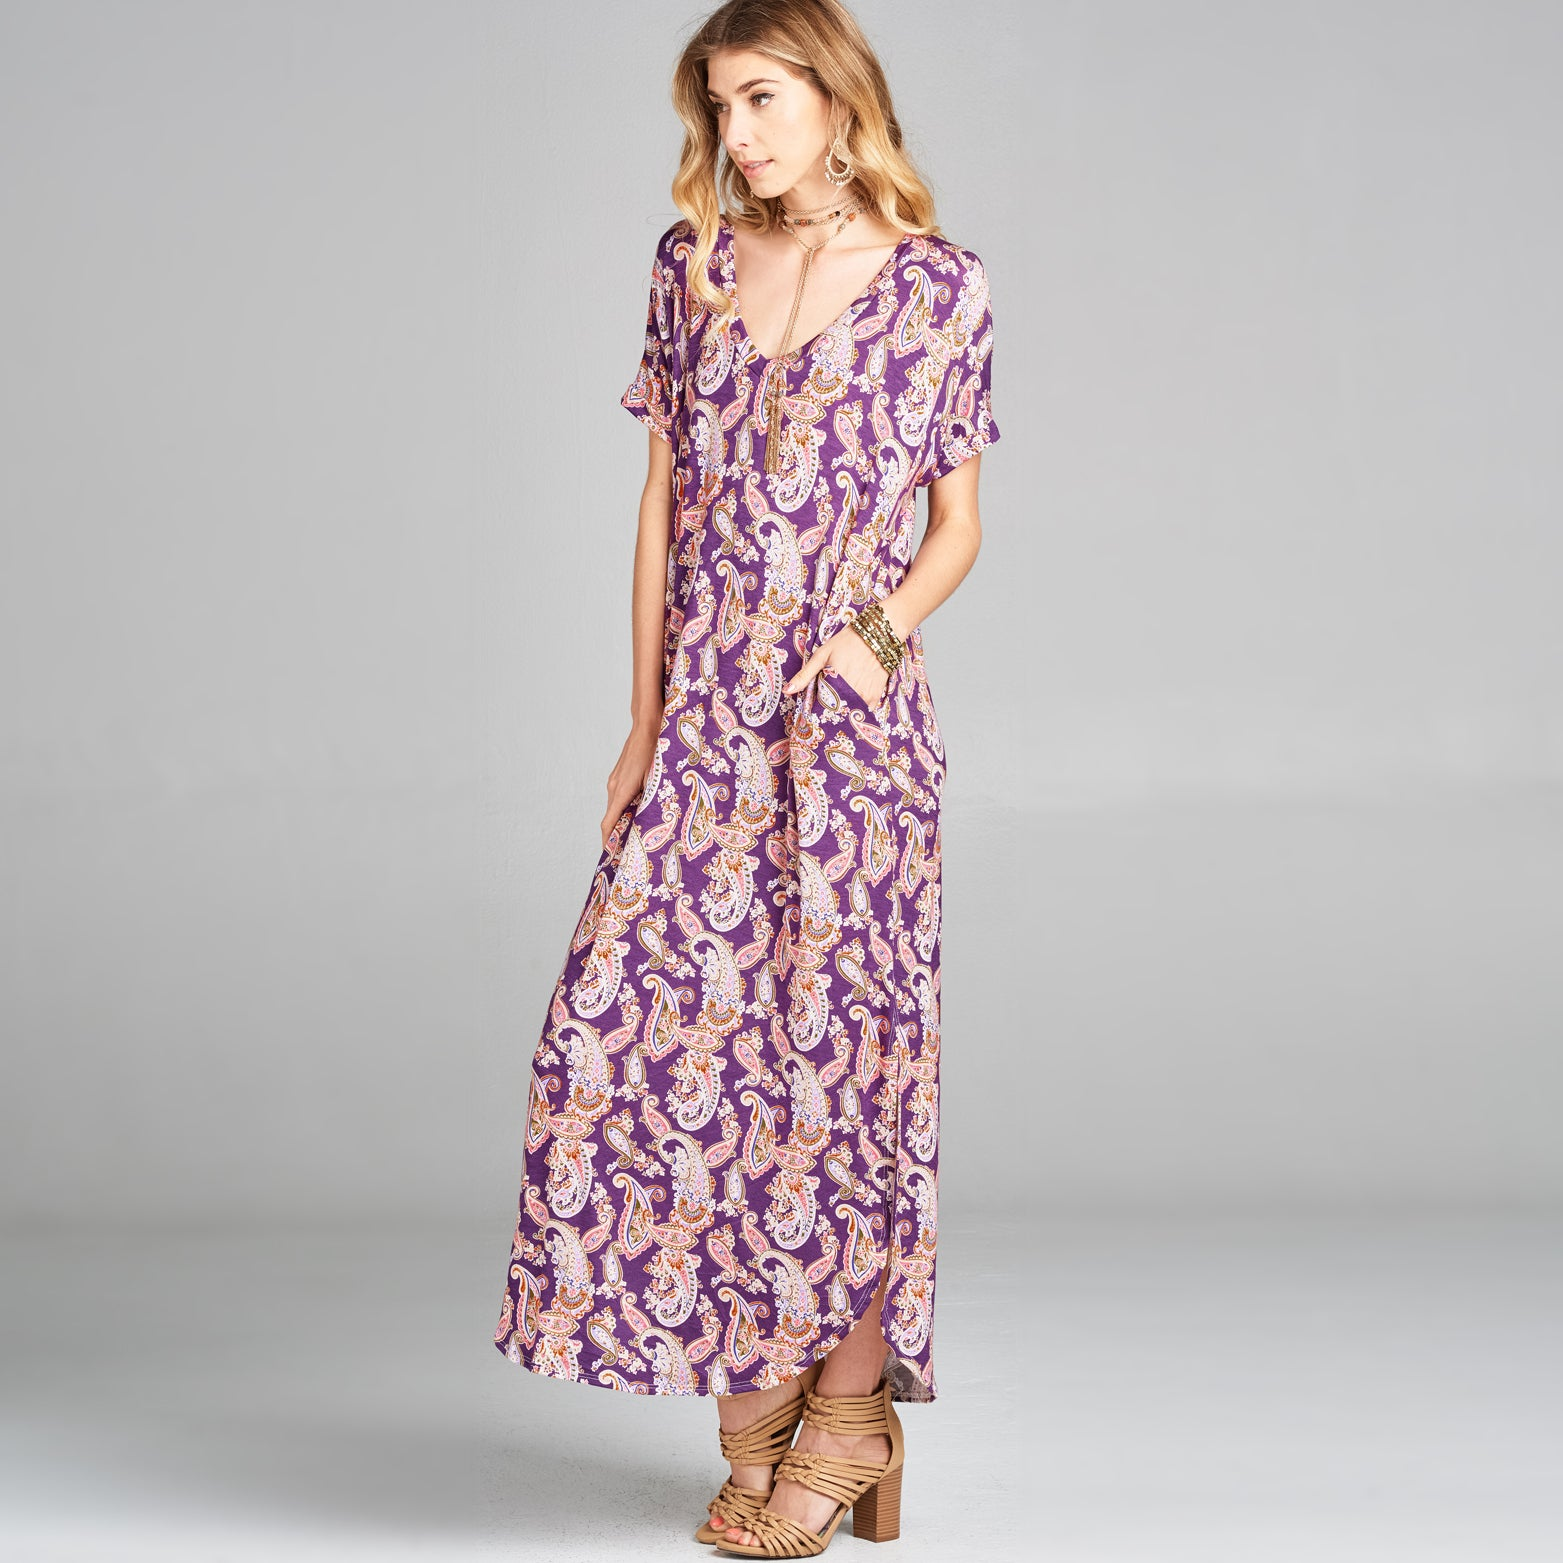 RL Purple Pink Paisley Maxi Dress